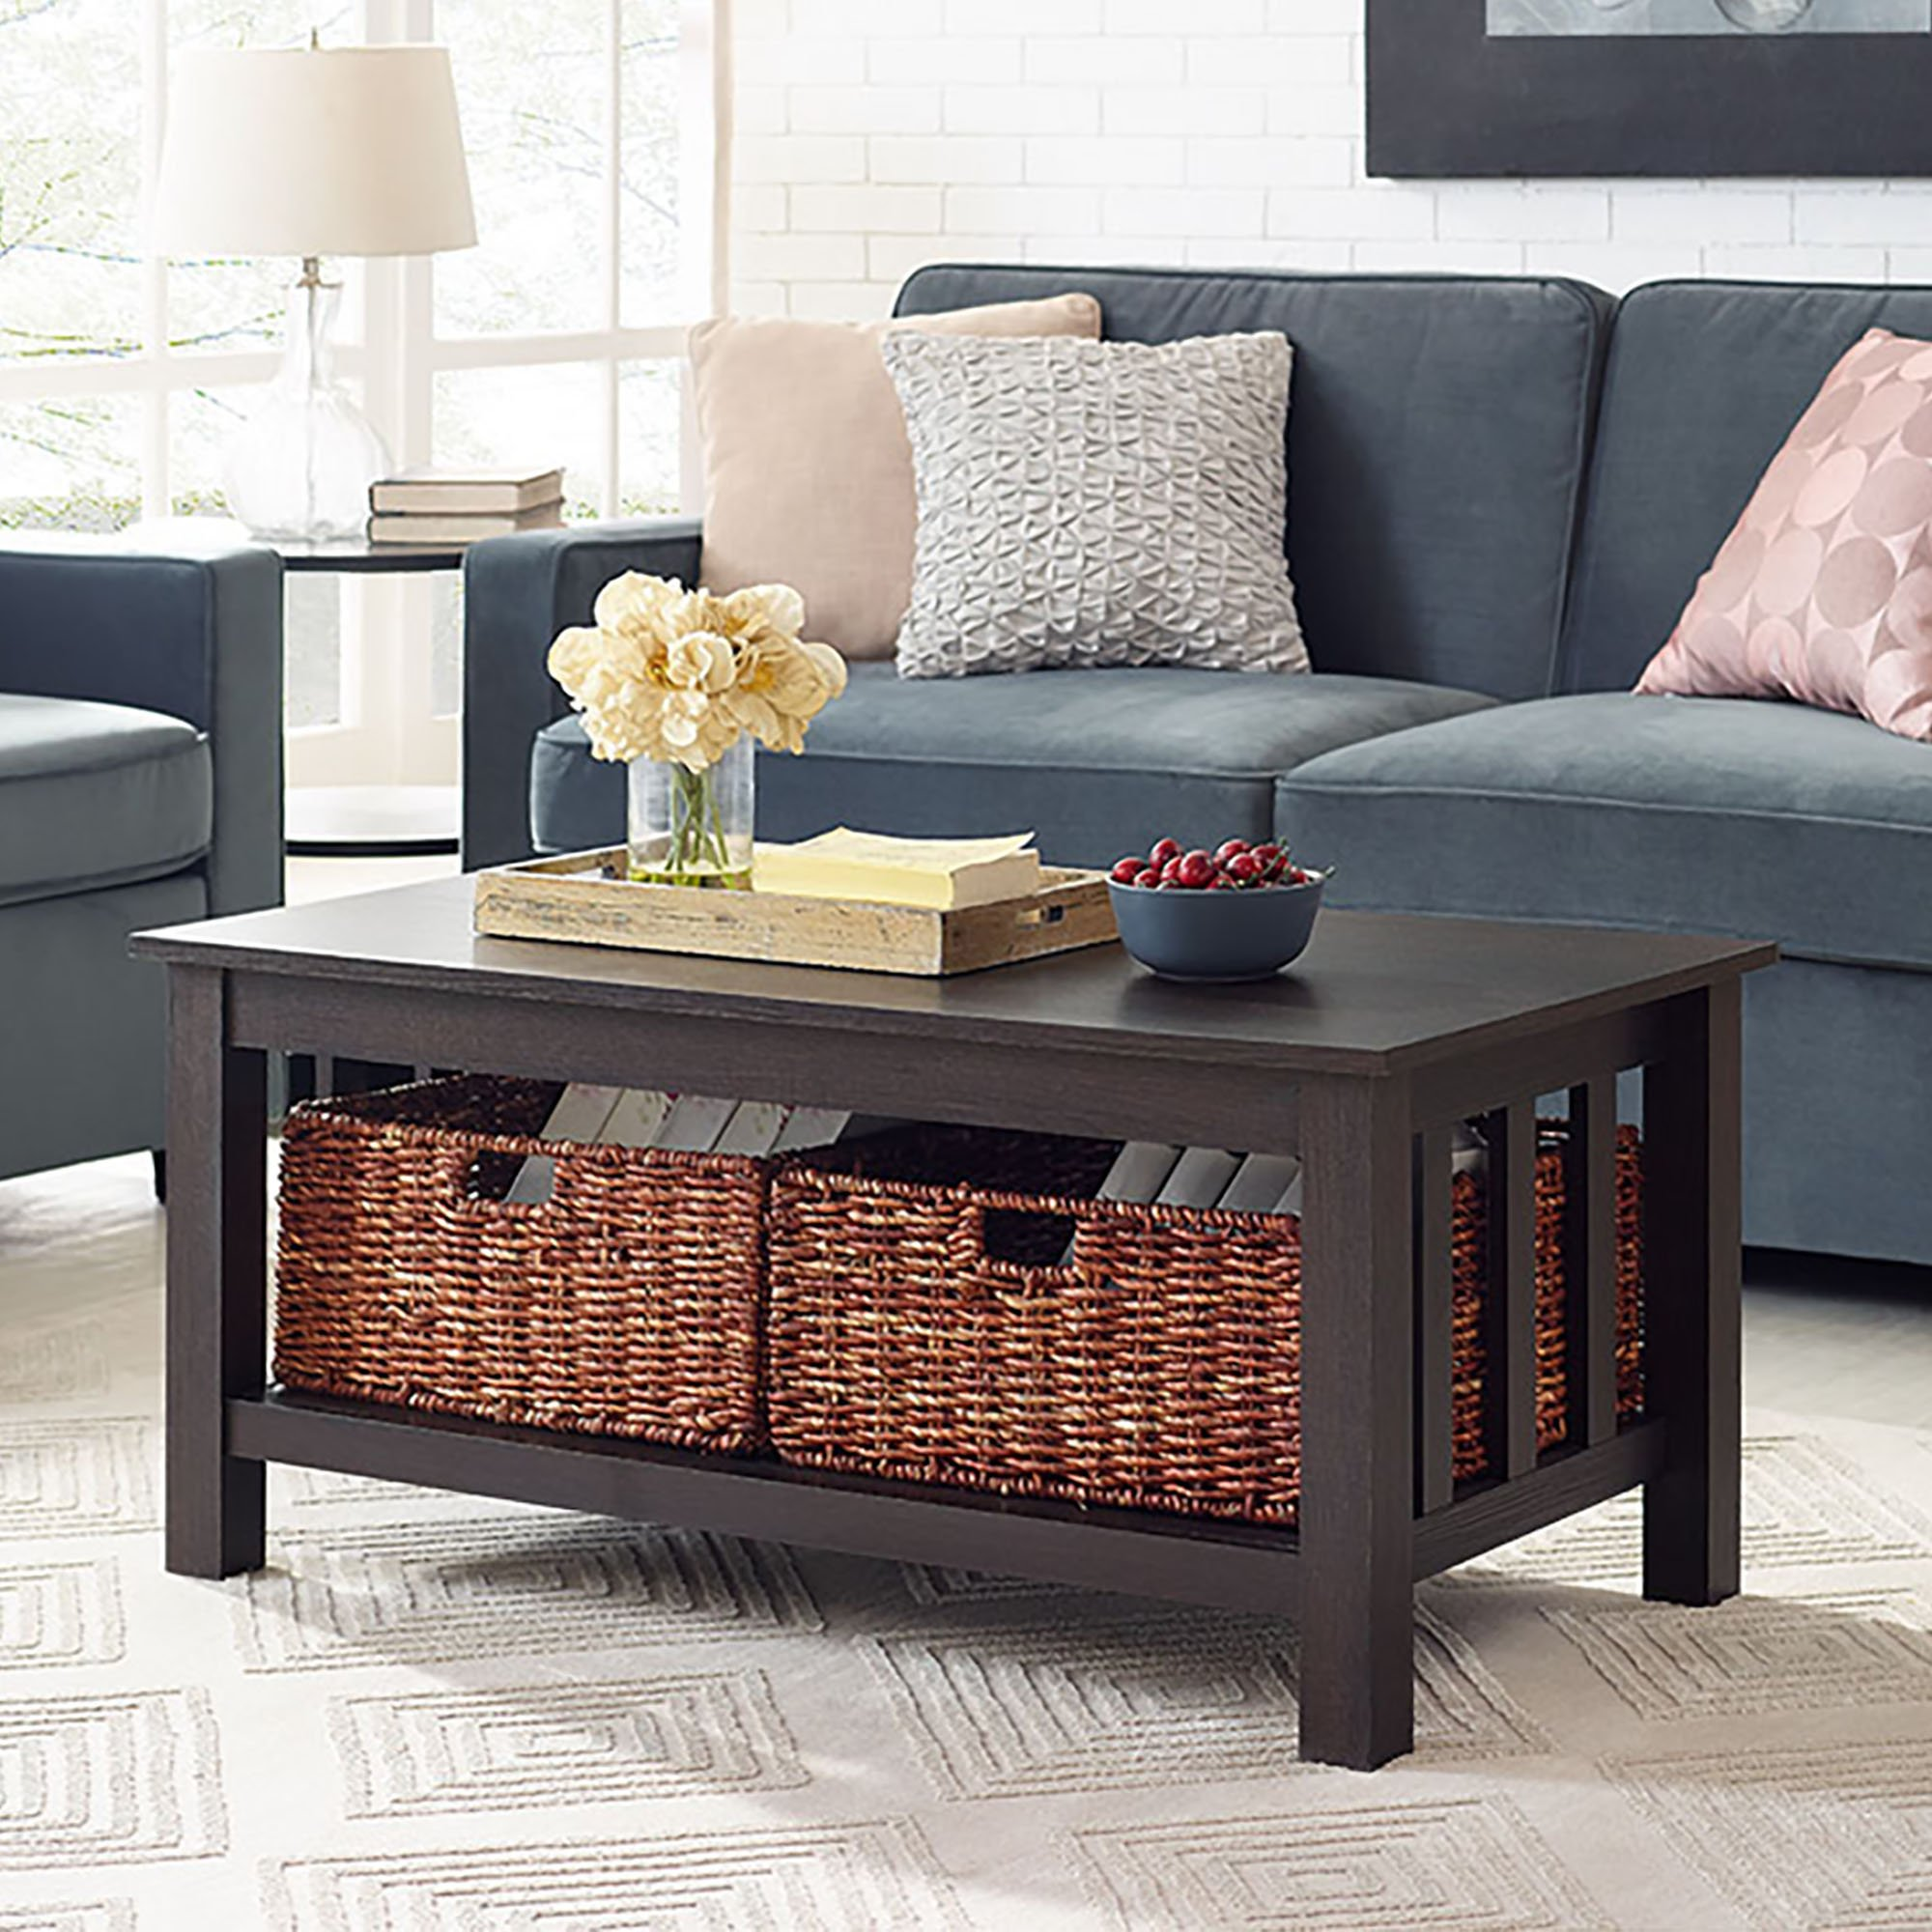 WE Furniture 40'' Wood Storage Coffee Table with Totes - Espresso, 40'',